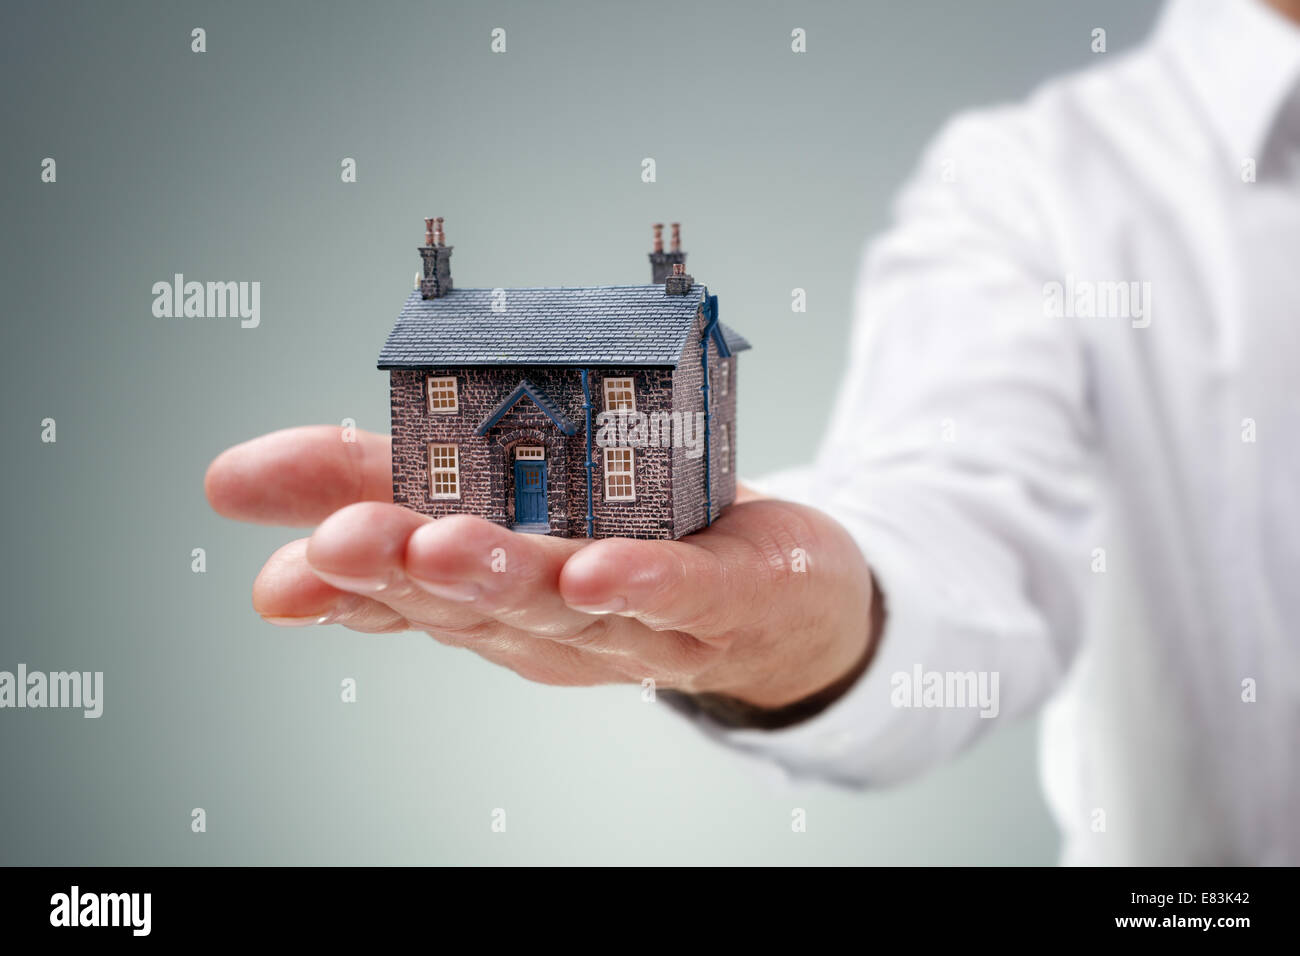 Real estate - Stock Image